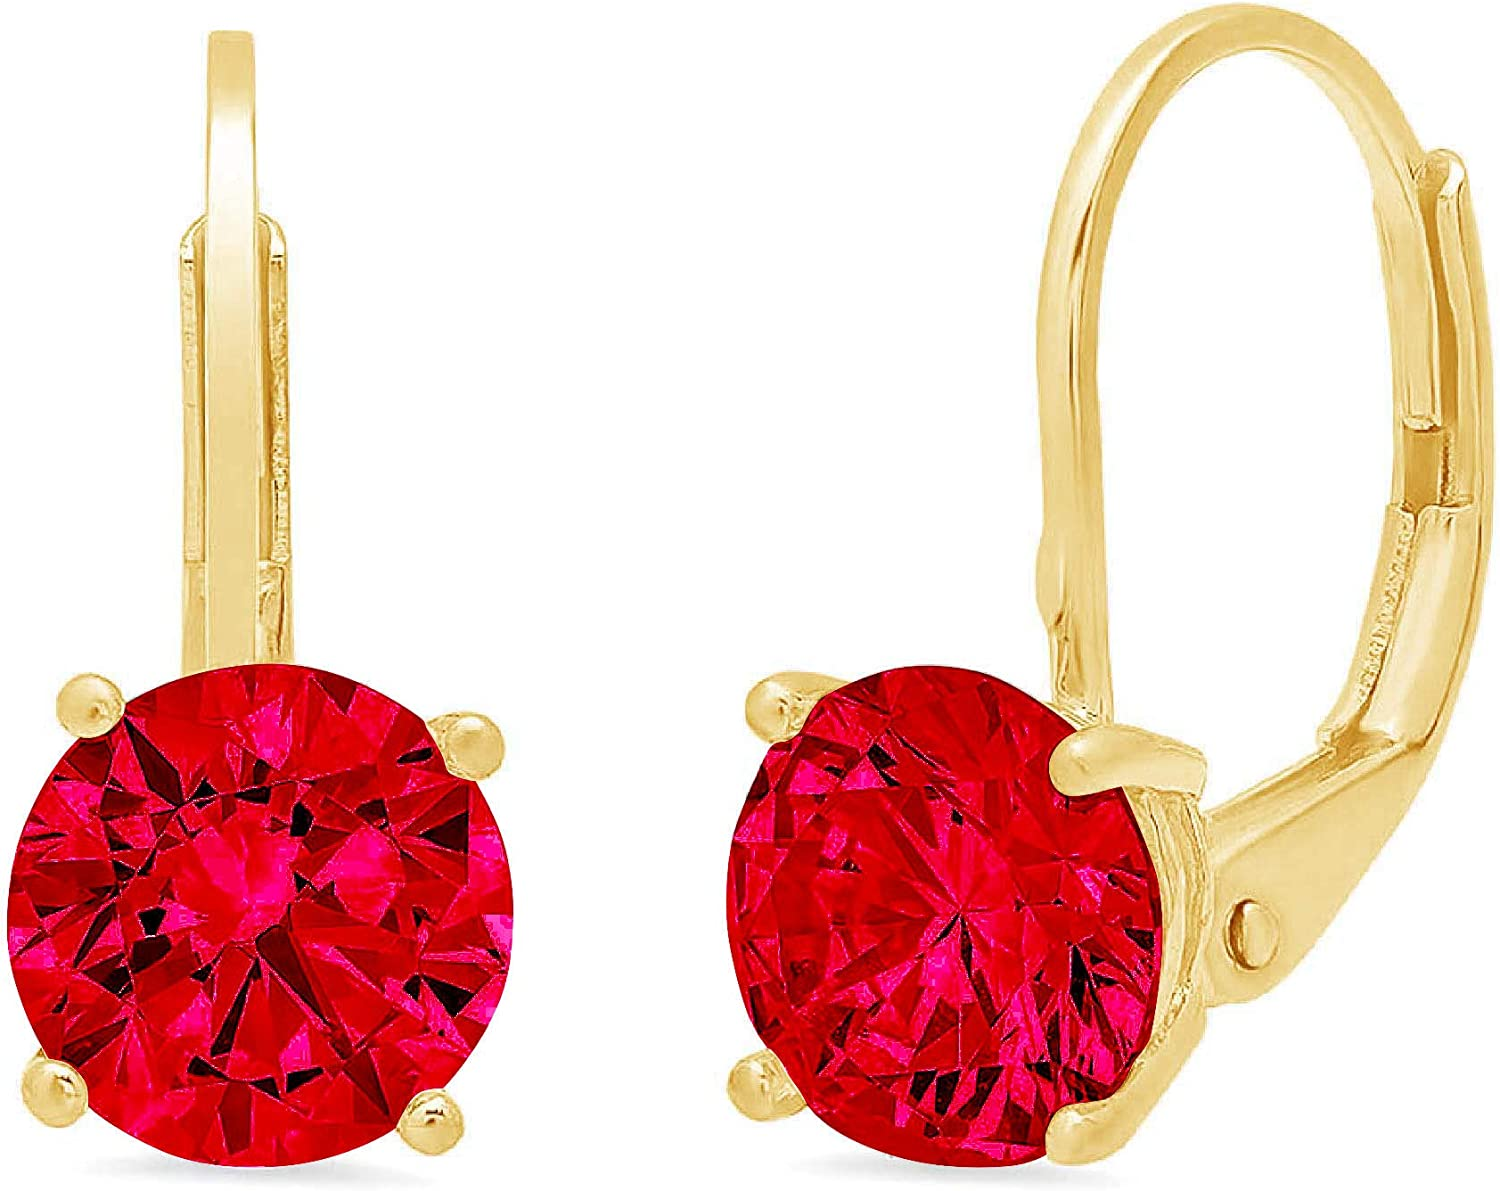 2.0 ct Brilliant Round Cut Solitaire Flawless Genuine Pink Tourmaline Gemstone VVS1 Ideal Pair of Leverback Drop Dangle Designer Earrings Solid 14k Yellow Gold